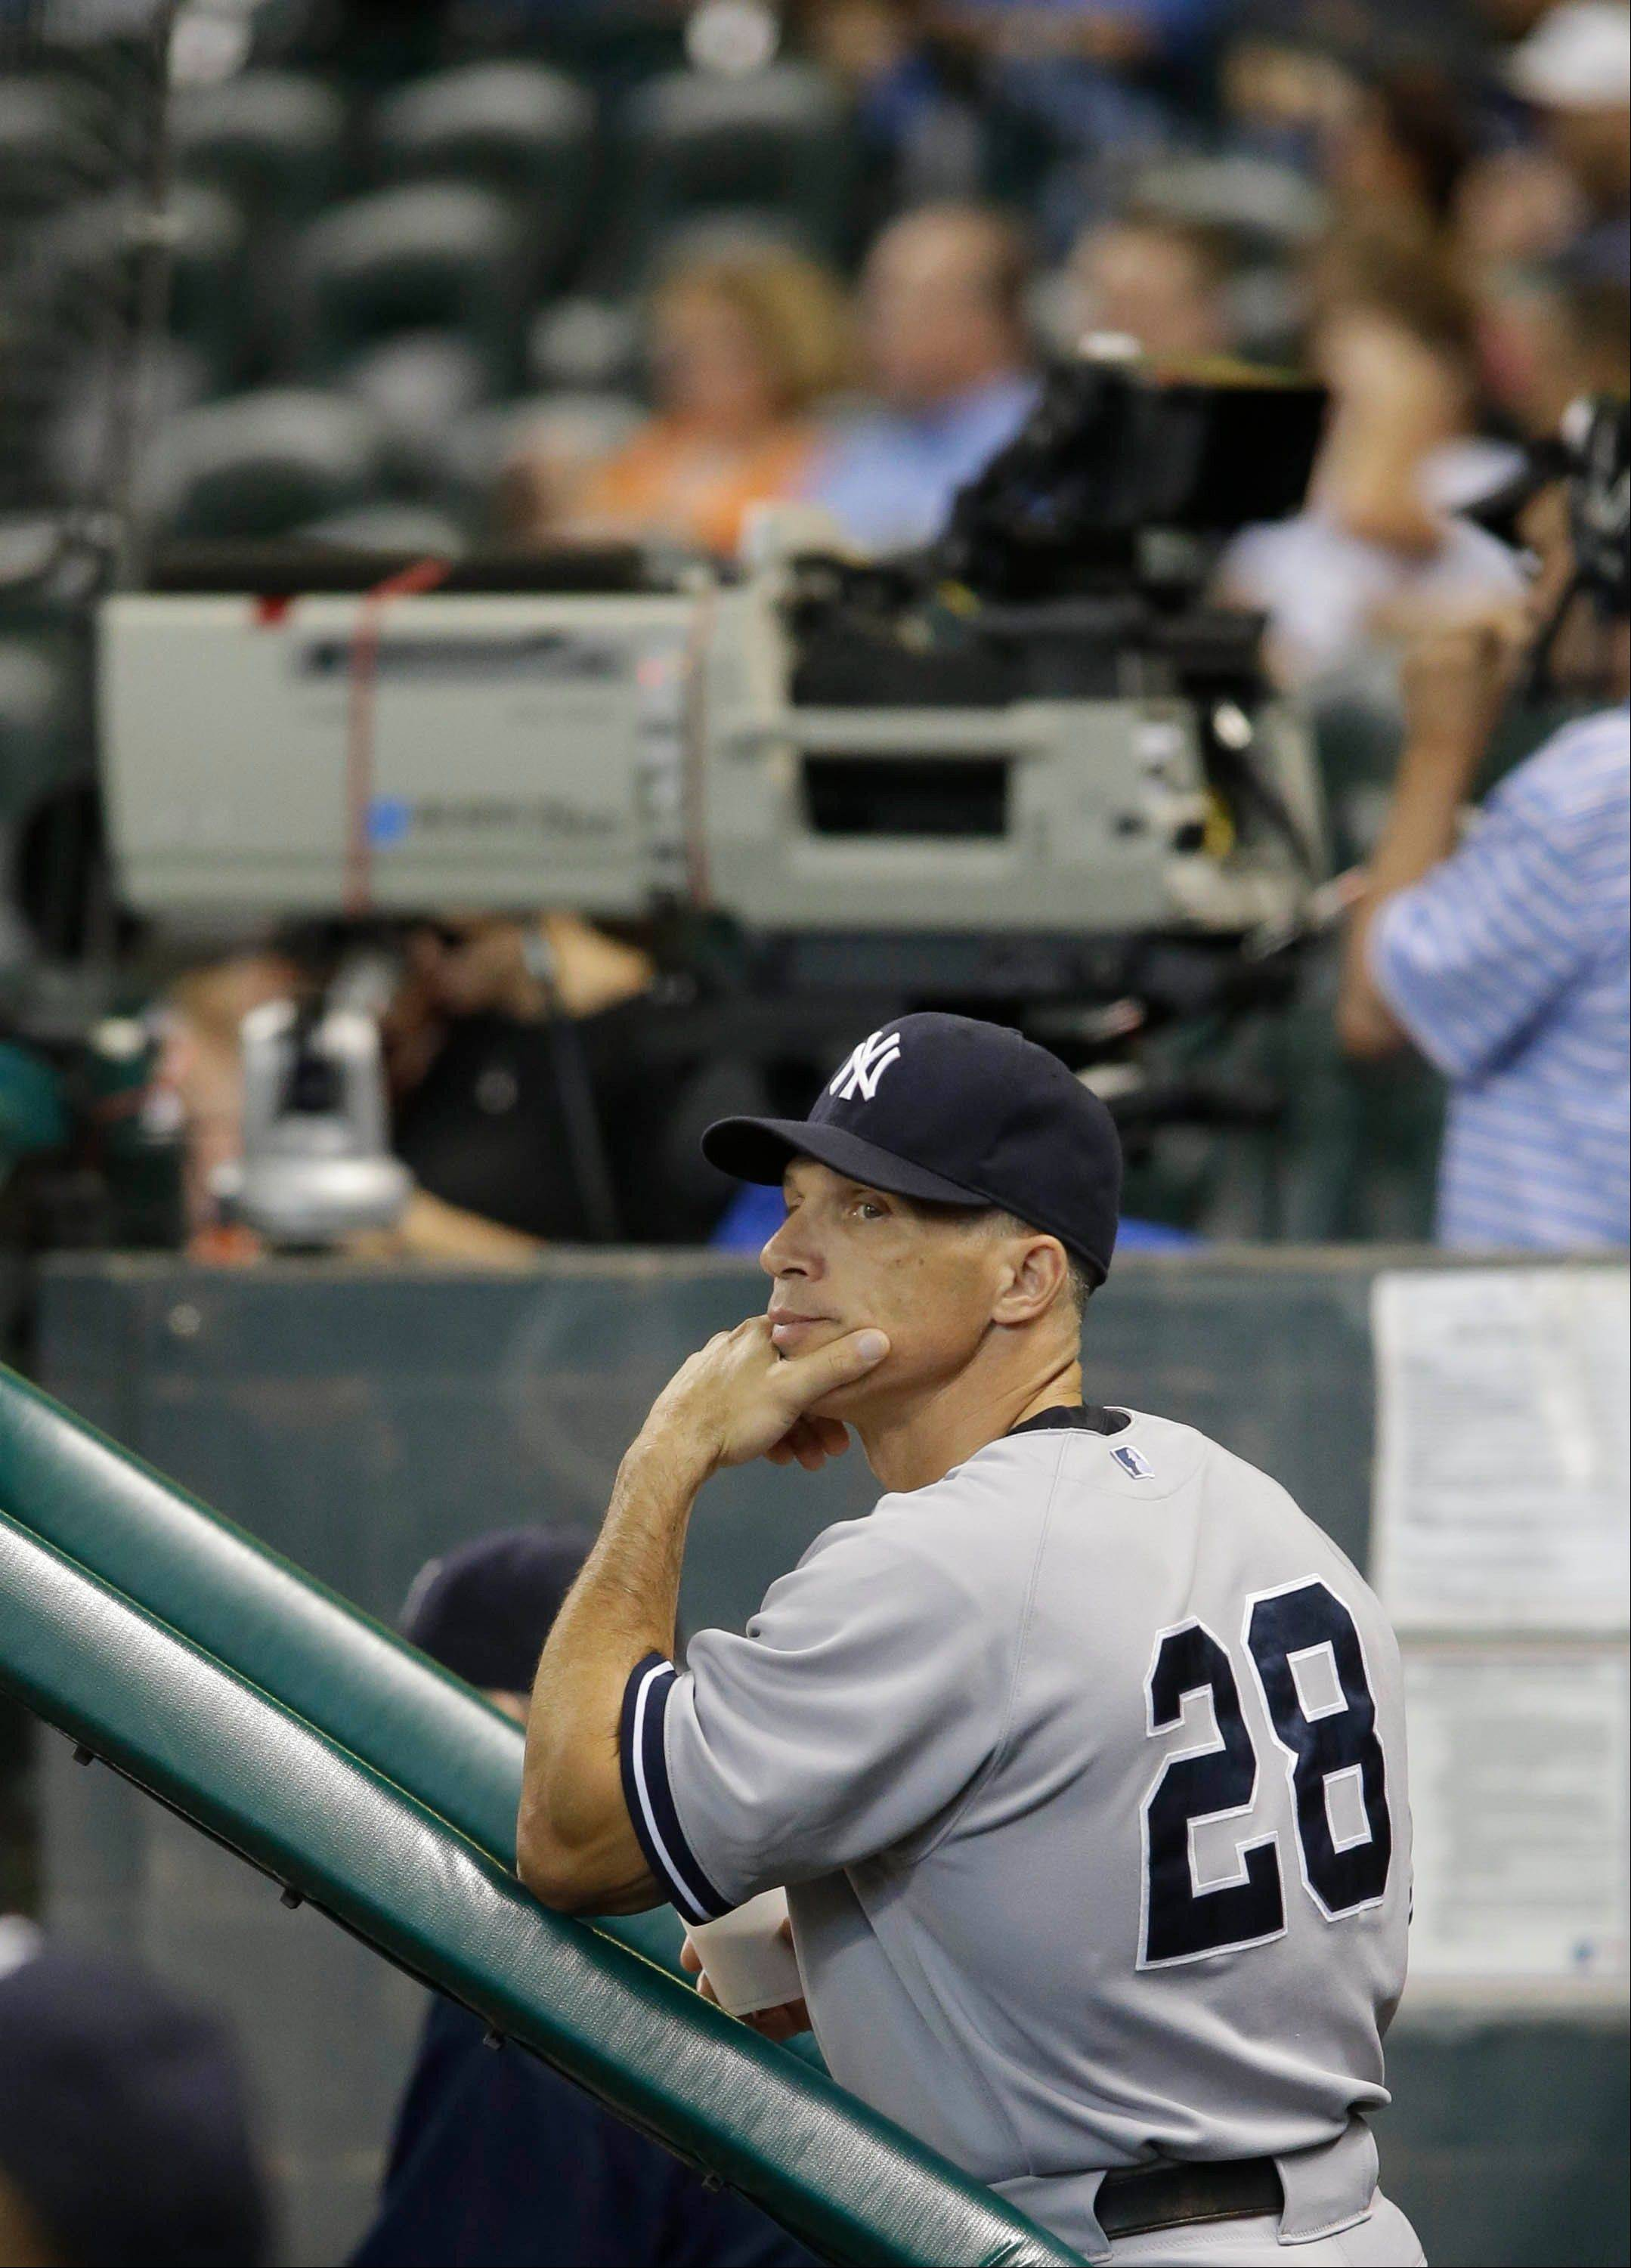 New York Yankees manager Joe Girardi watches the scoreboard from the dugout during Sunday's game in Houston.